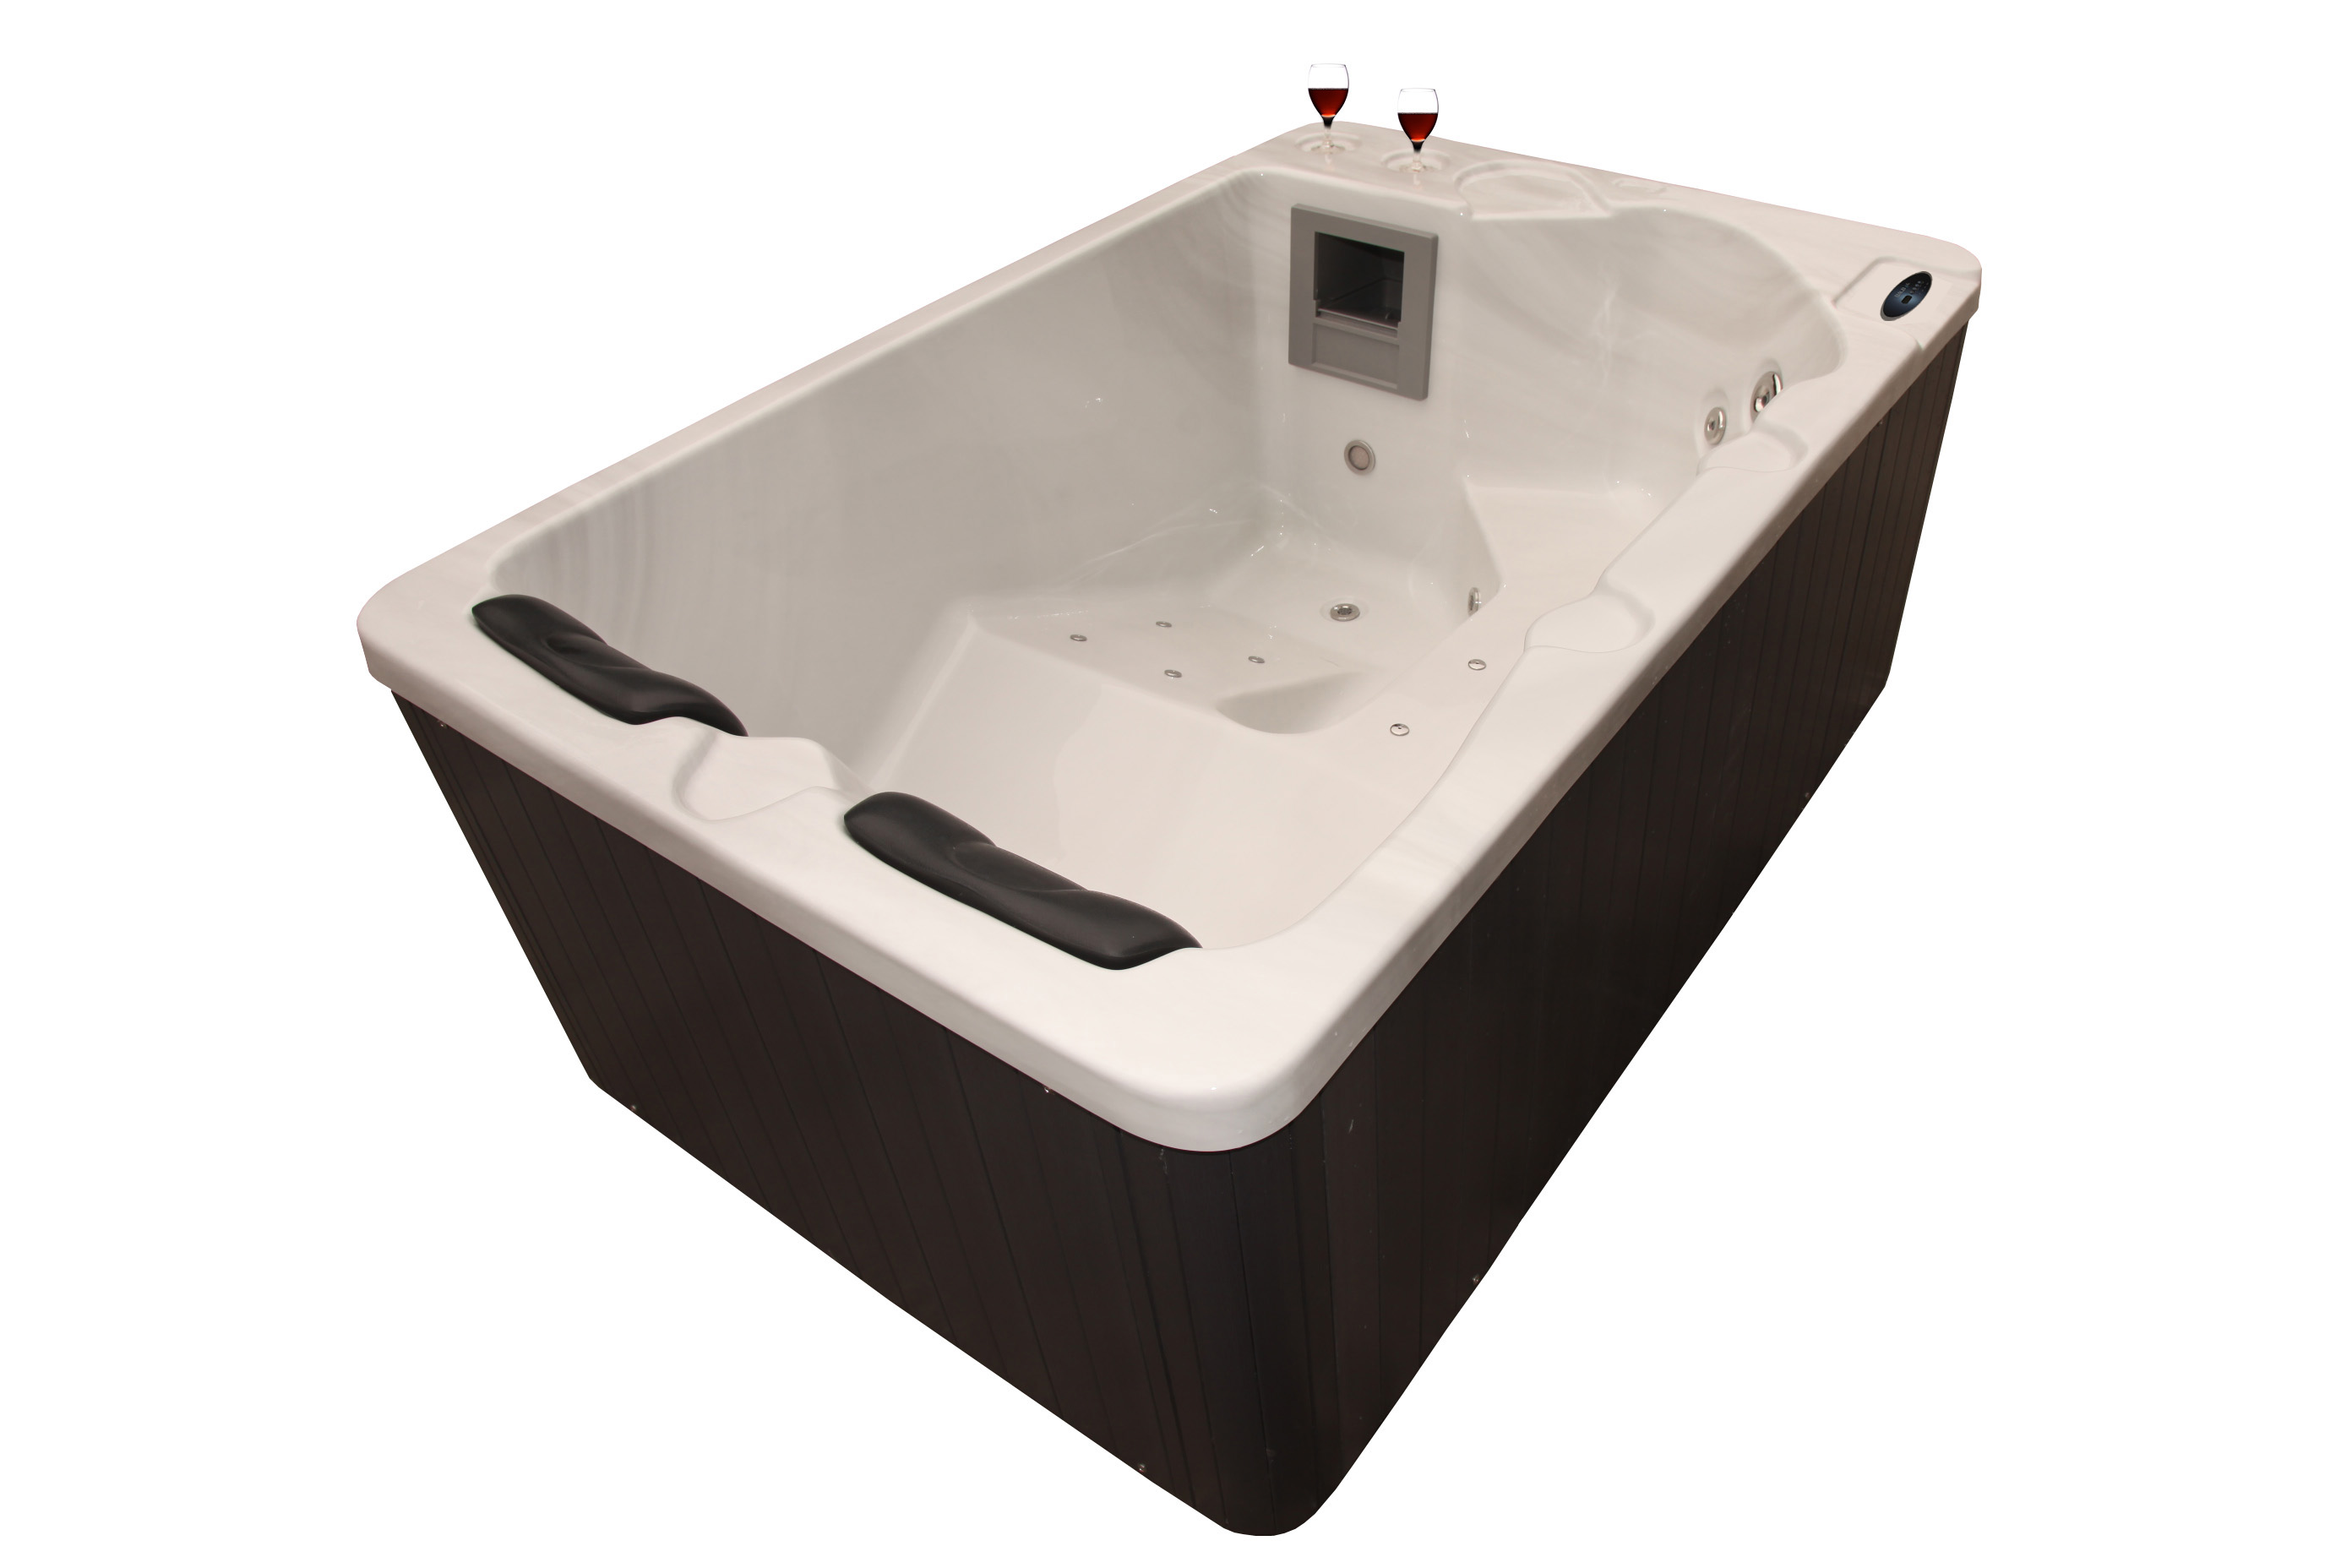 New Packaged 2016 Hot Tub Matching Steps Side